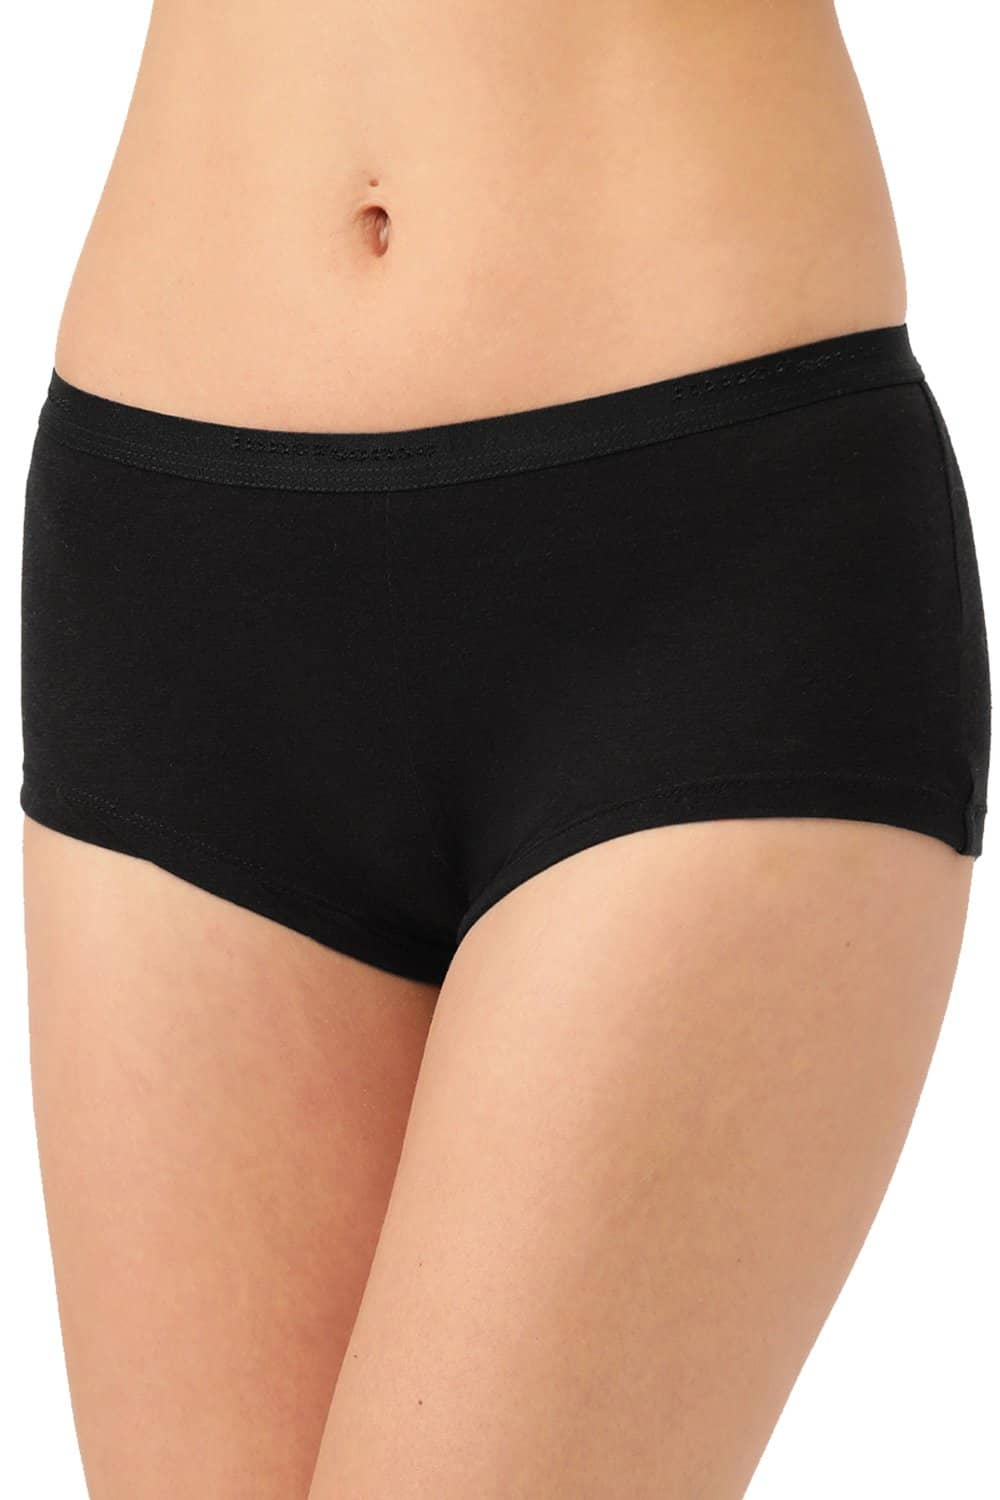 Inner Sense Organic Cotton Antimicrobial Boyshorts